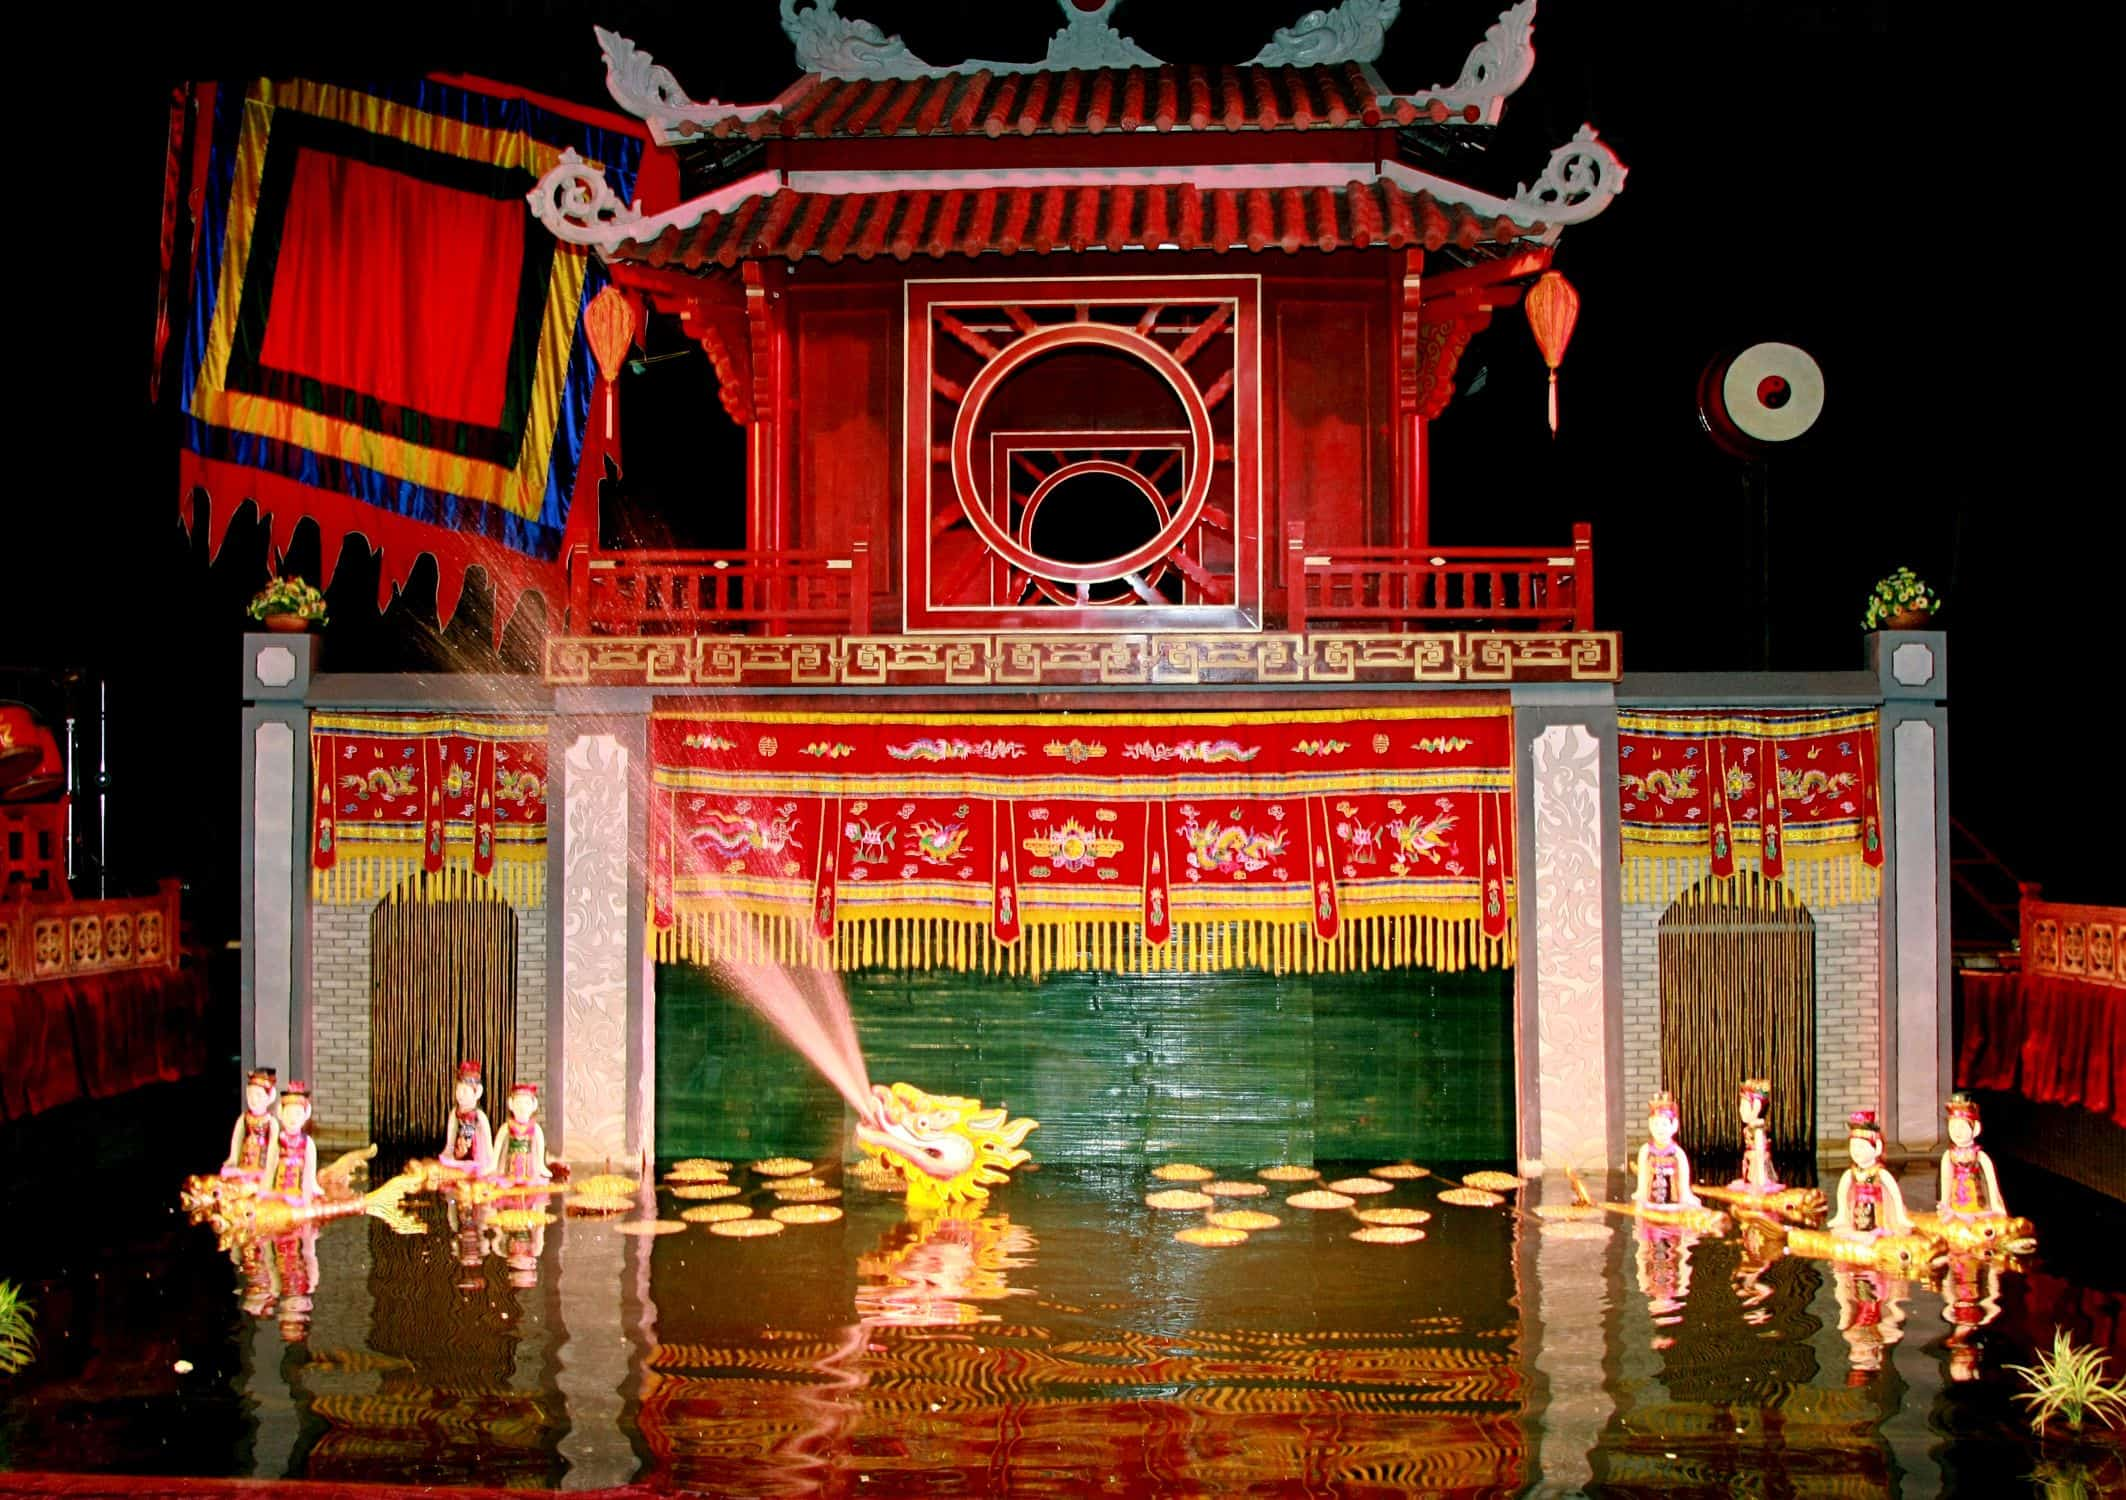 Visit Thang long water puppet theatre near Ngoc Son temple